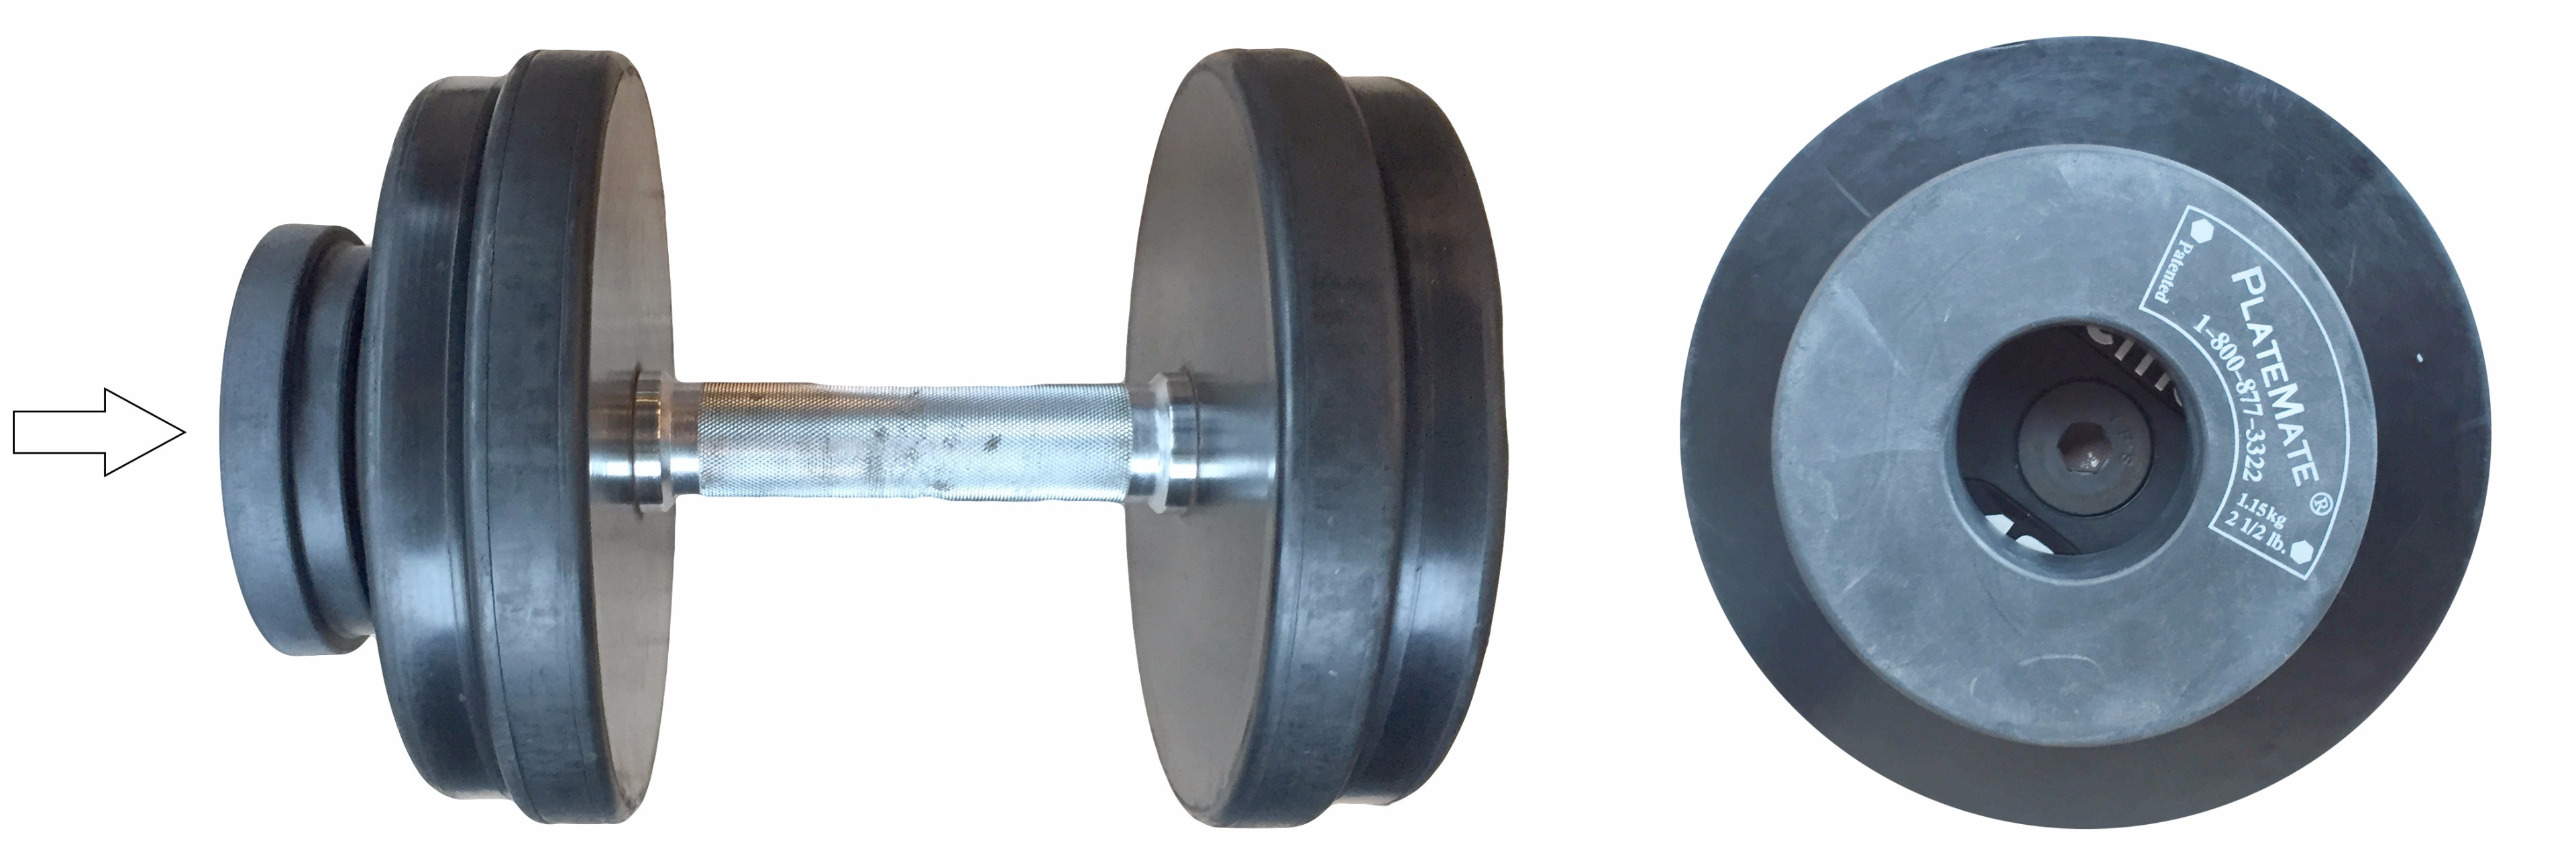 Magnet weights